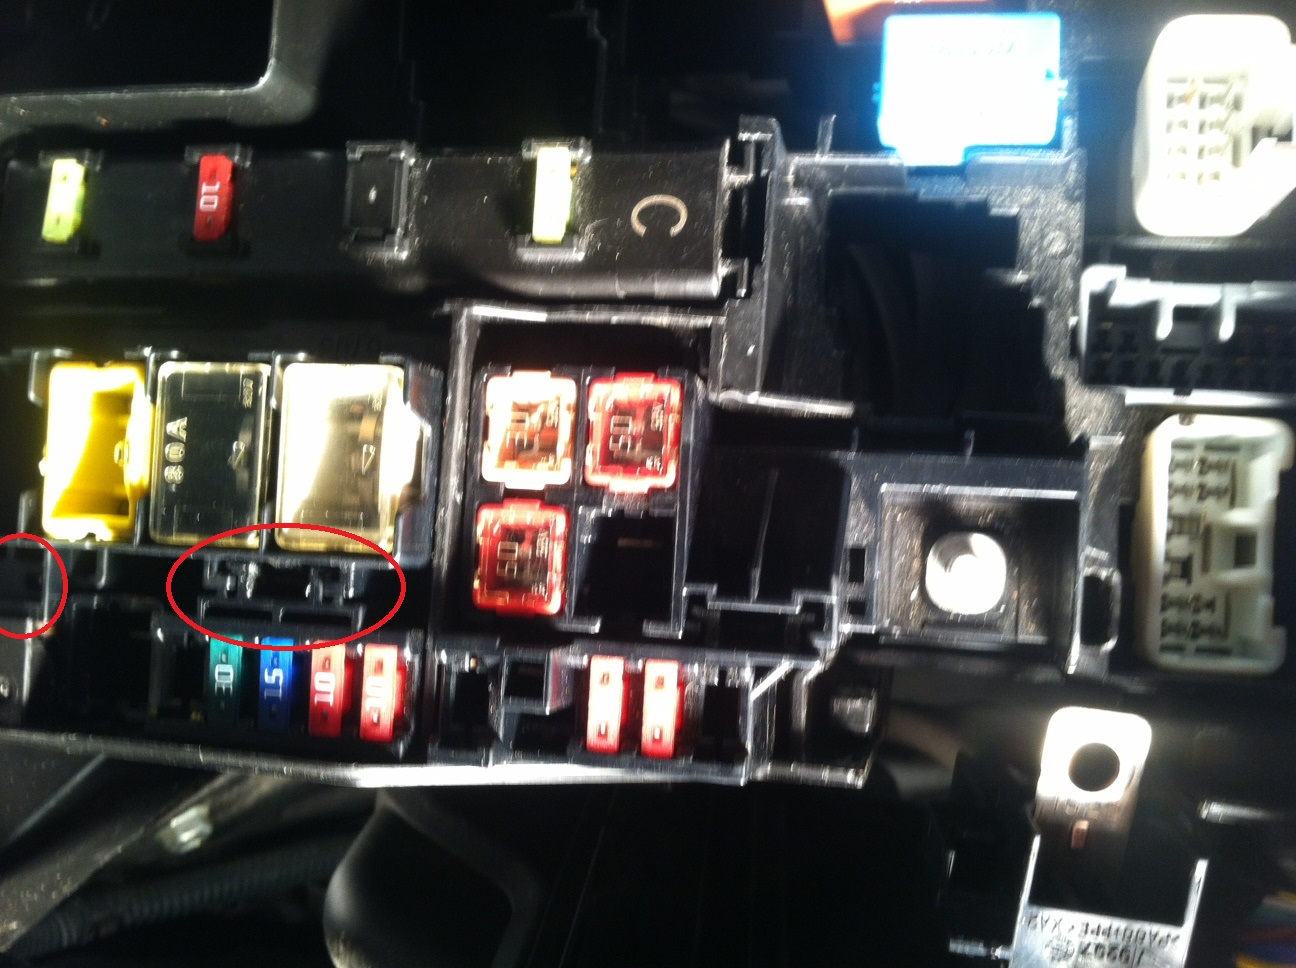 How Do You Replace The Alt Fuse On A 2011 Rav4  It Seems To Be Put Together Differently Than